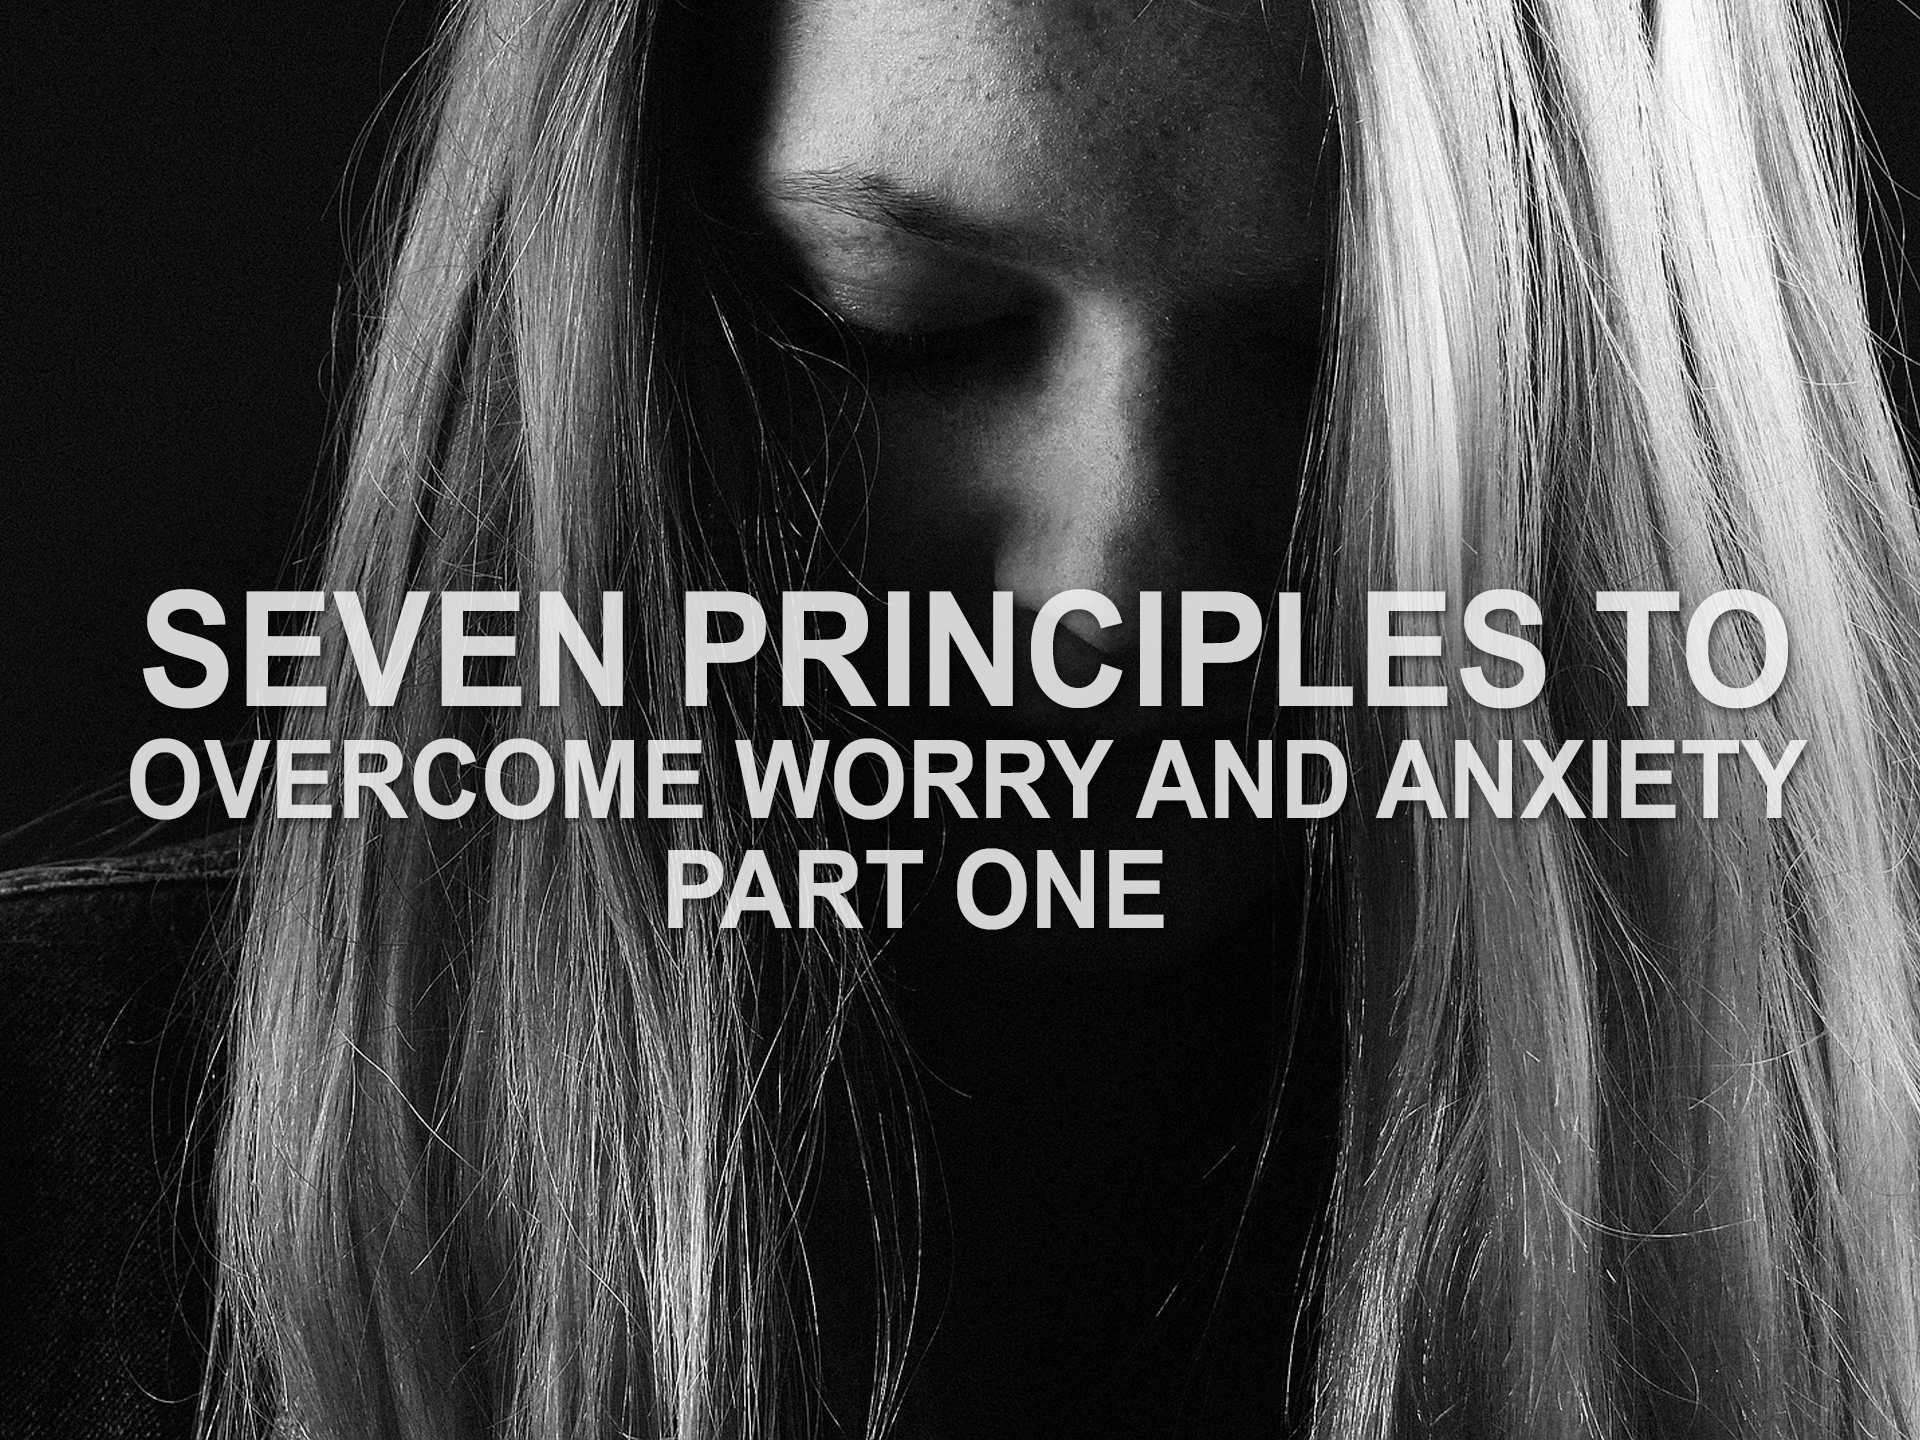 062319 seven principles to overcome worry and anxiety part 1.png